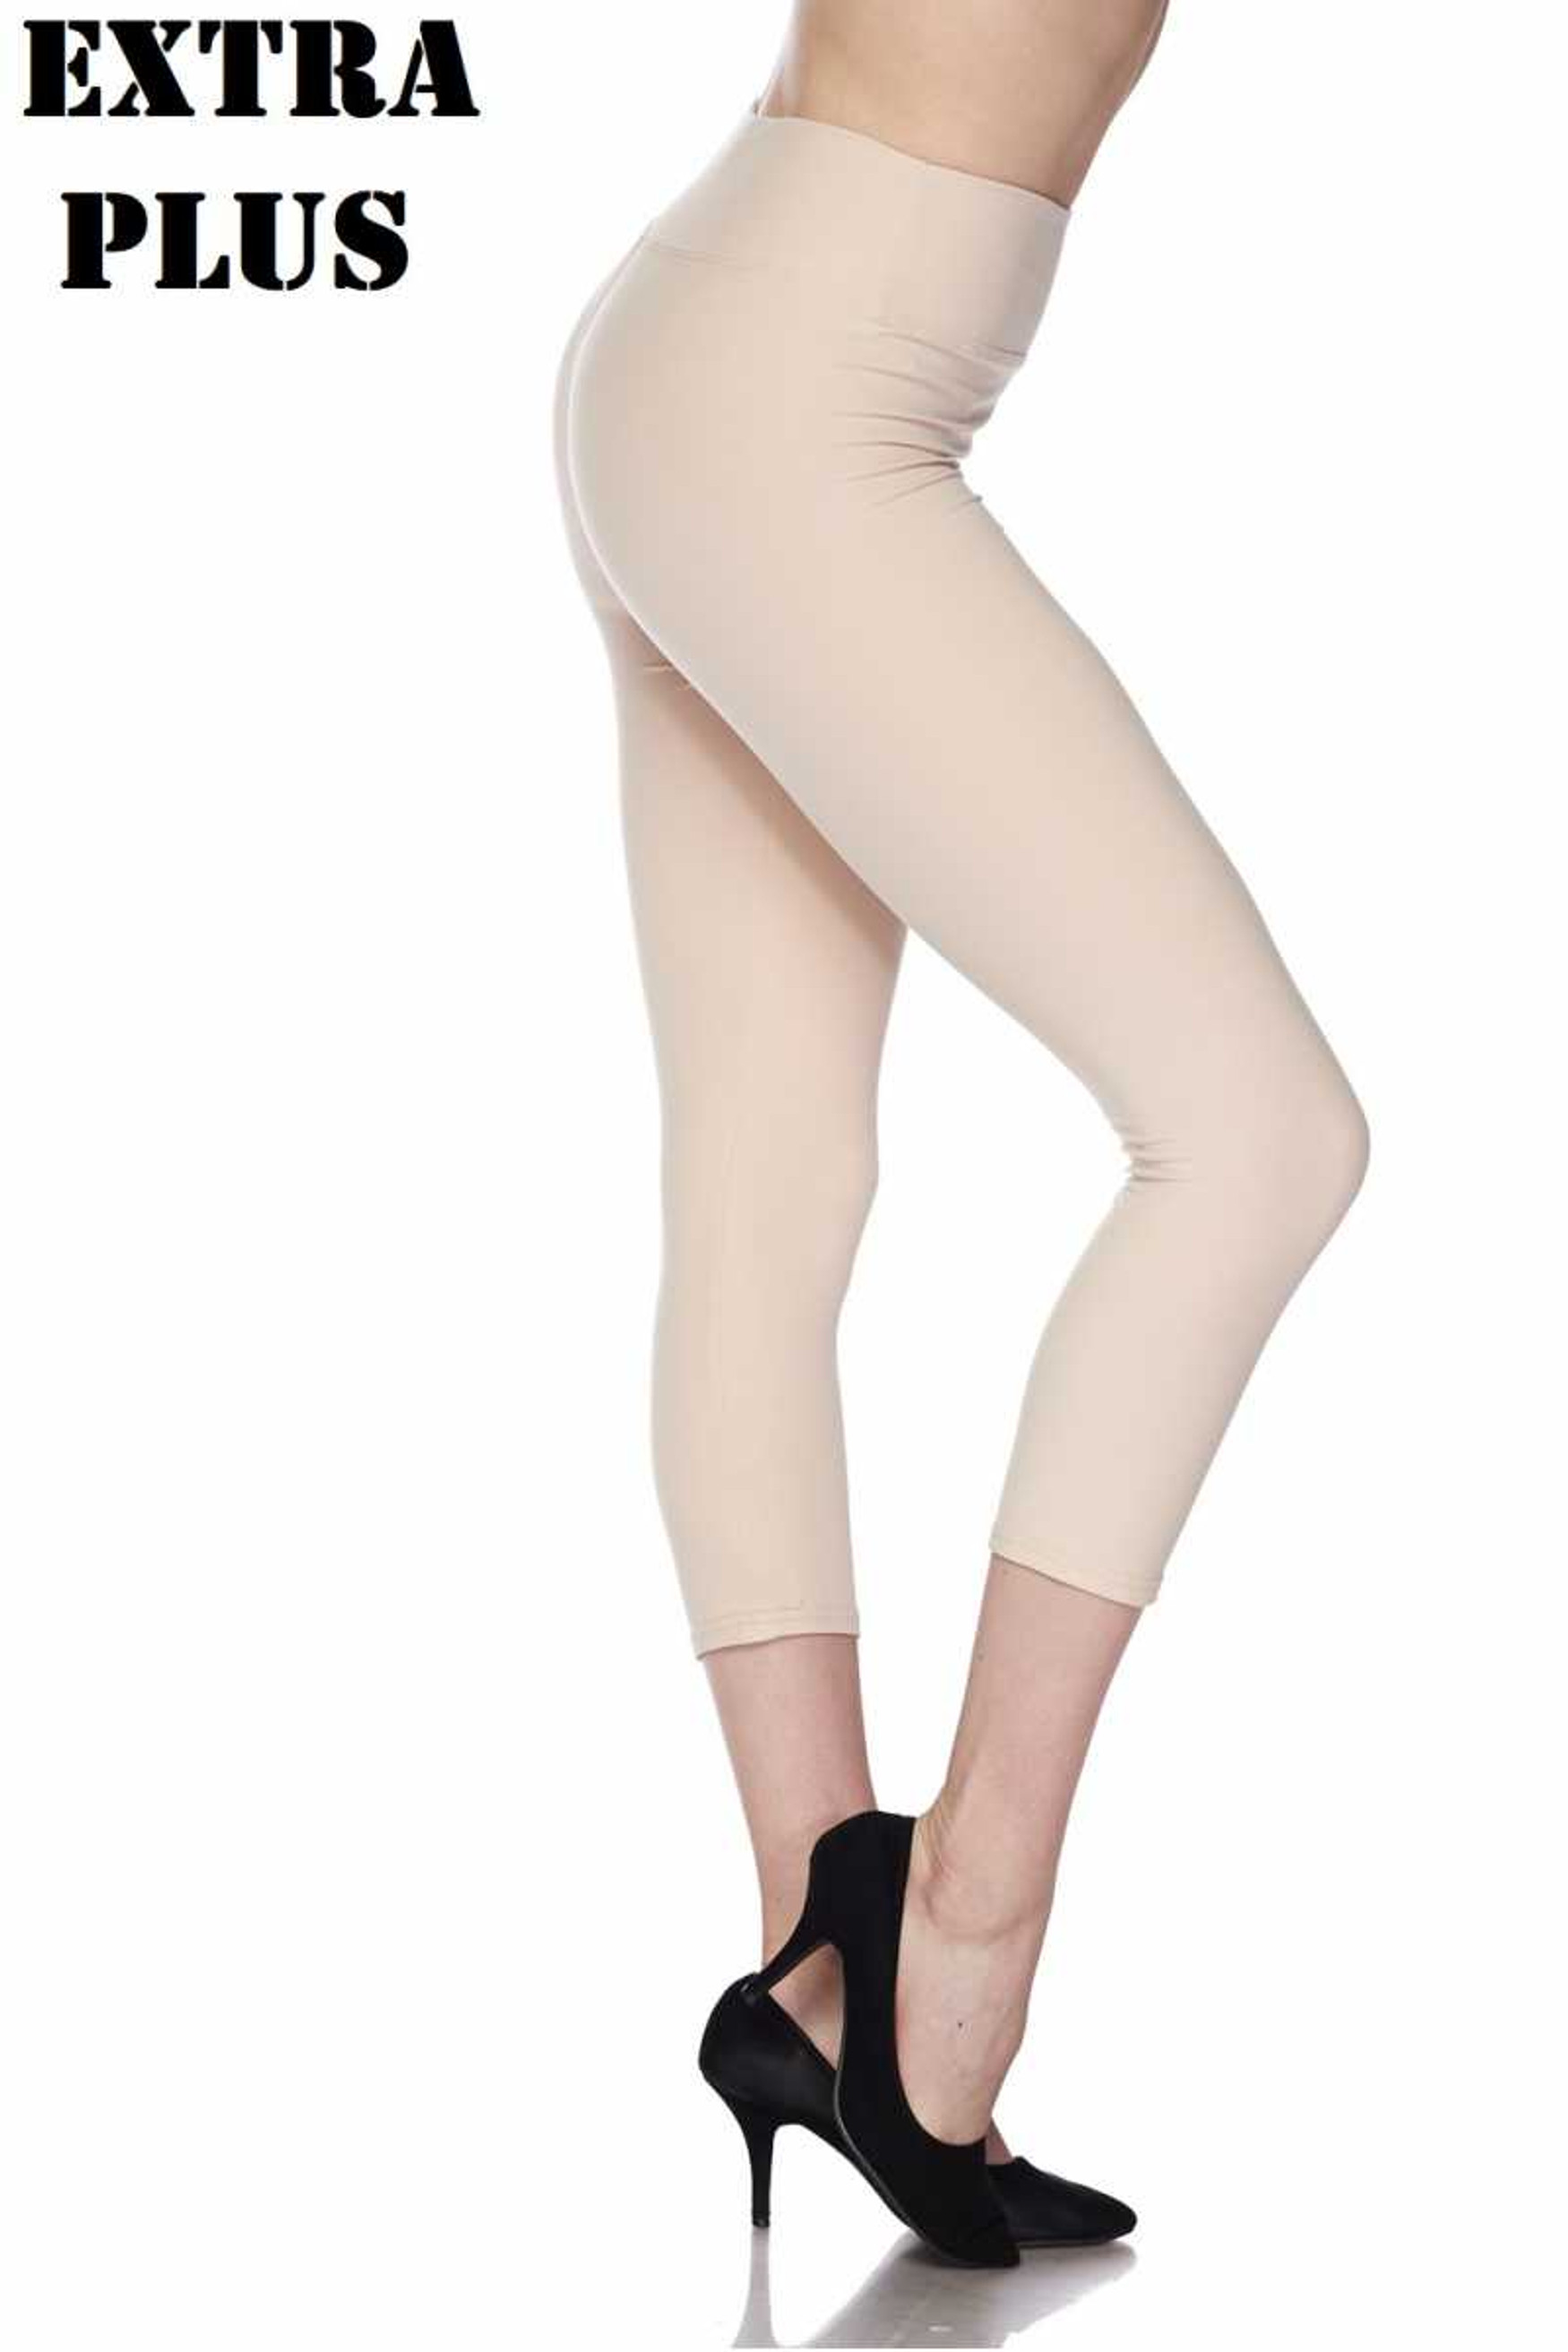 Brushed  Basic Solid High Waisted Extra Plus Size Capris - 3 Inch - 3X-5X  - New Mix